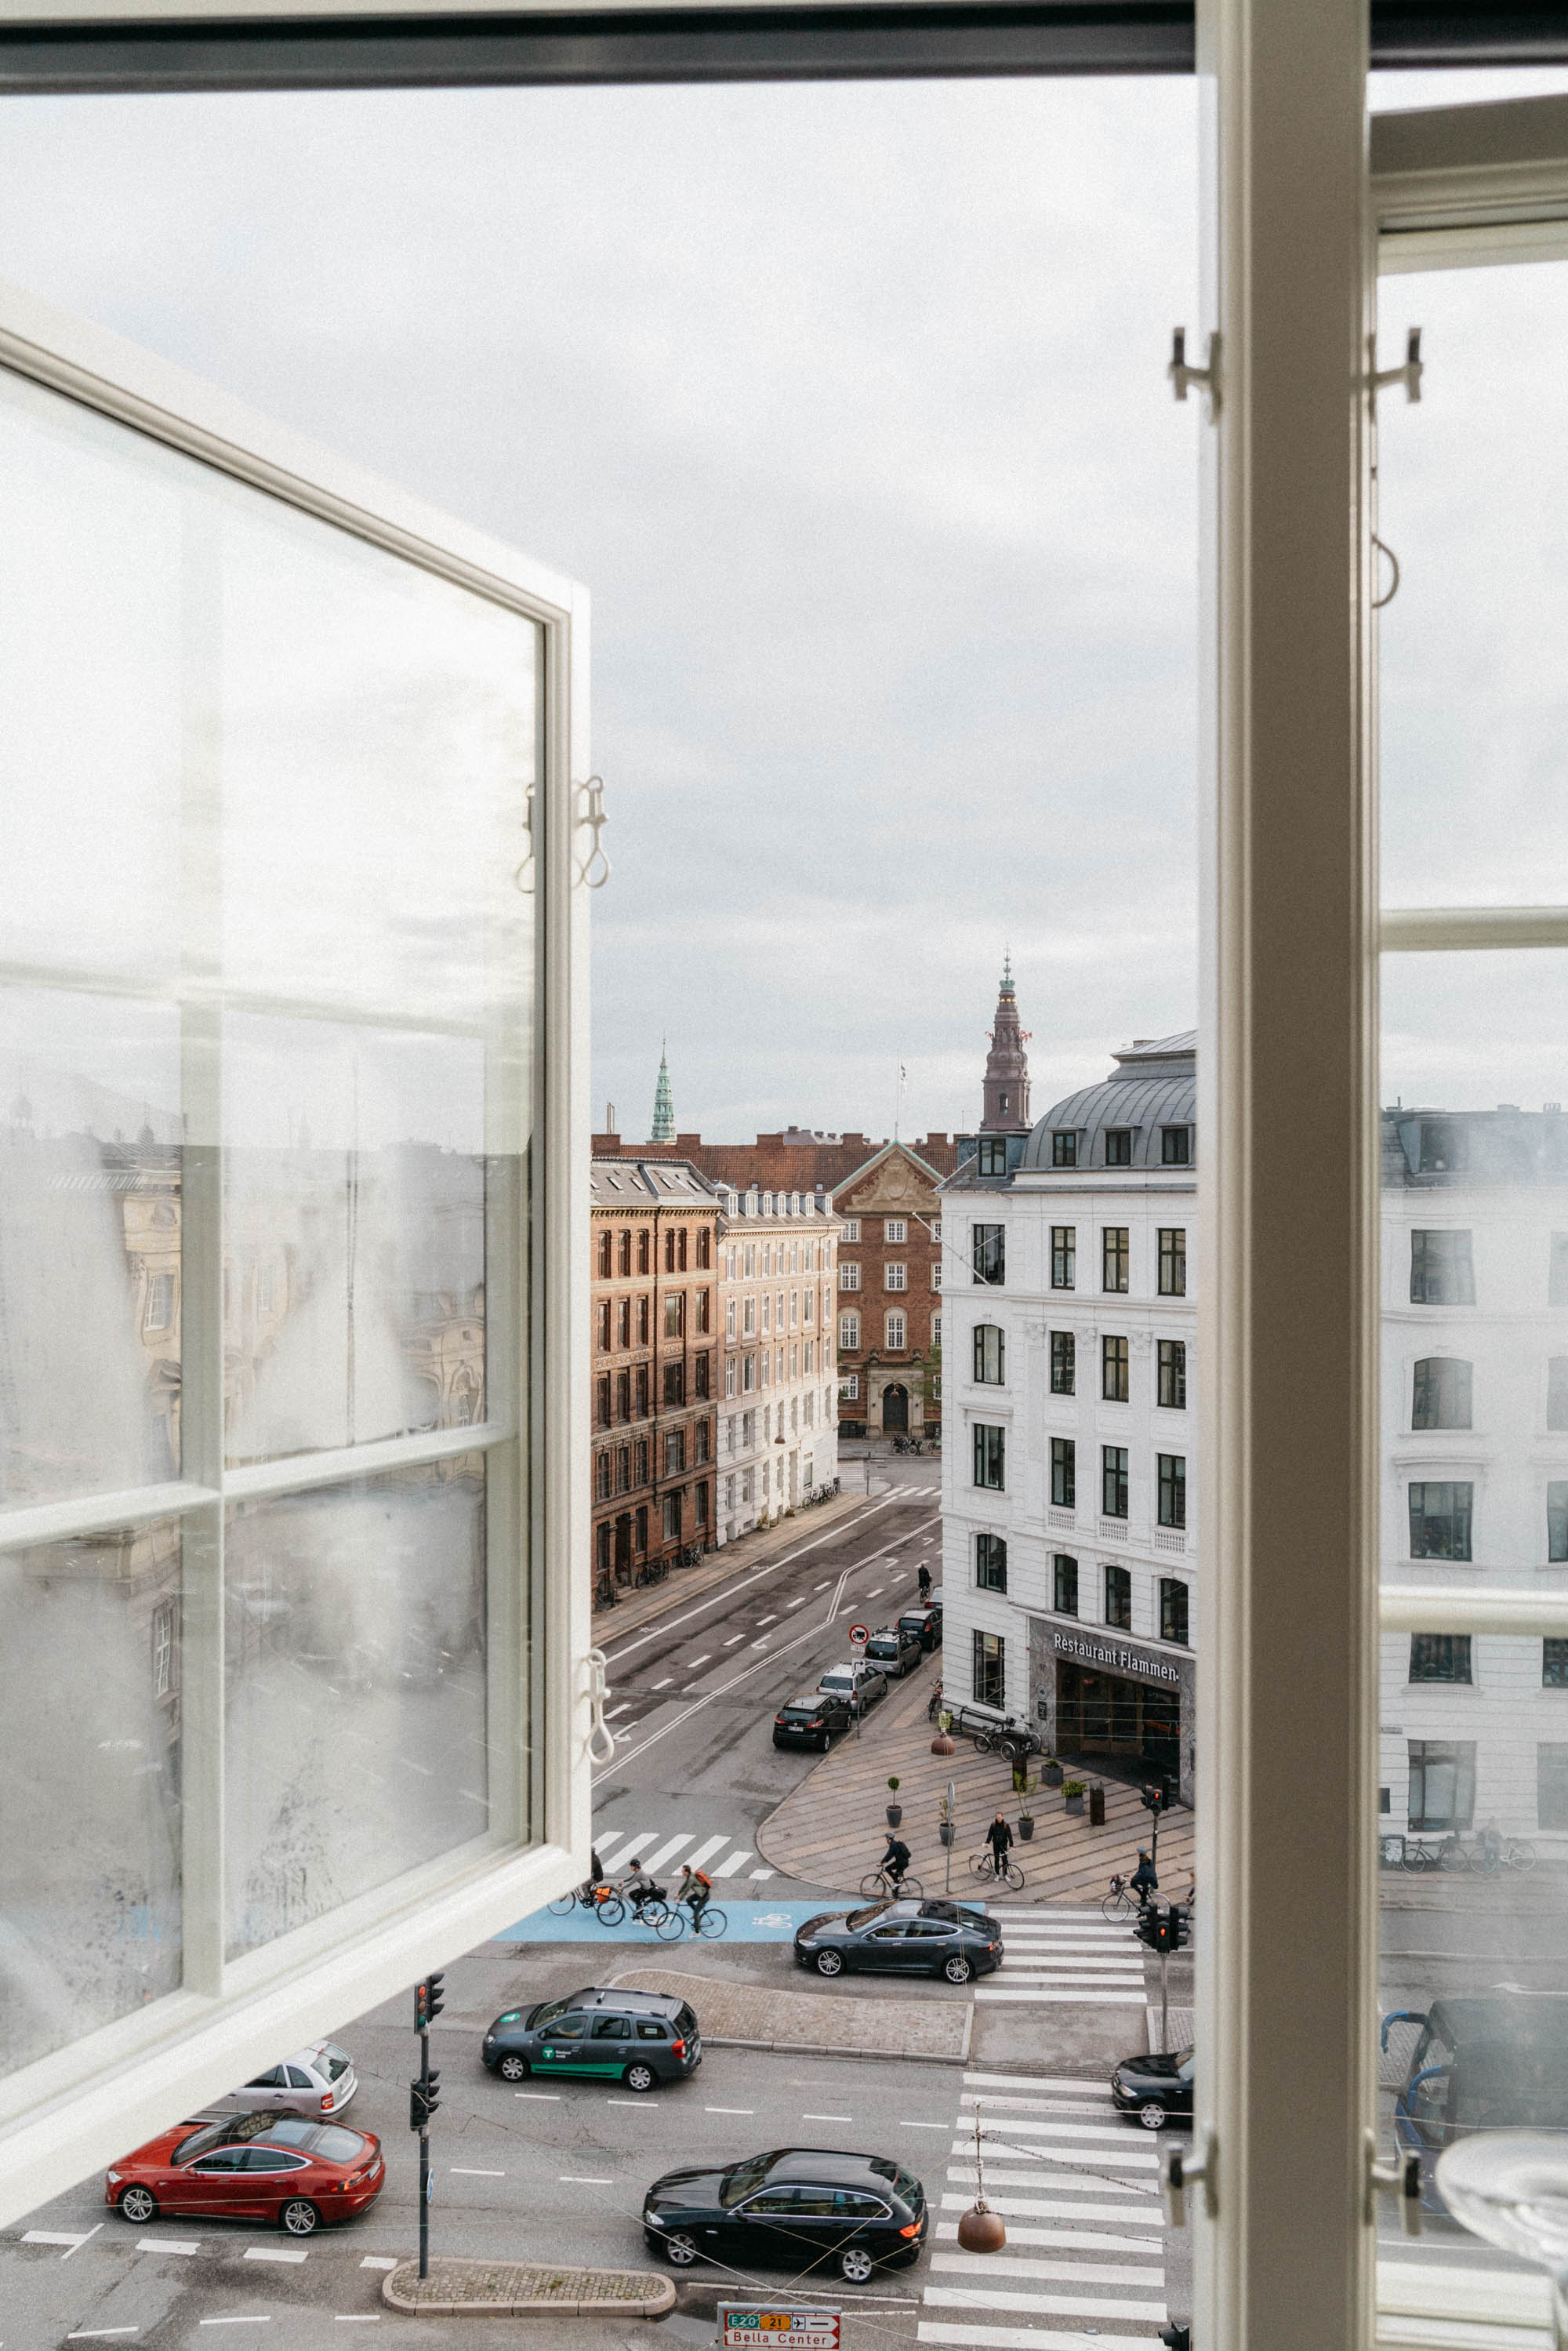 Views from our room at  Nobis Hotel Copenhagen